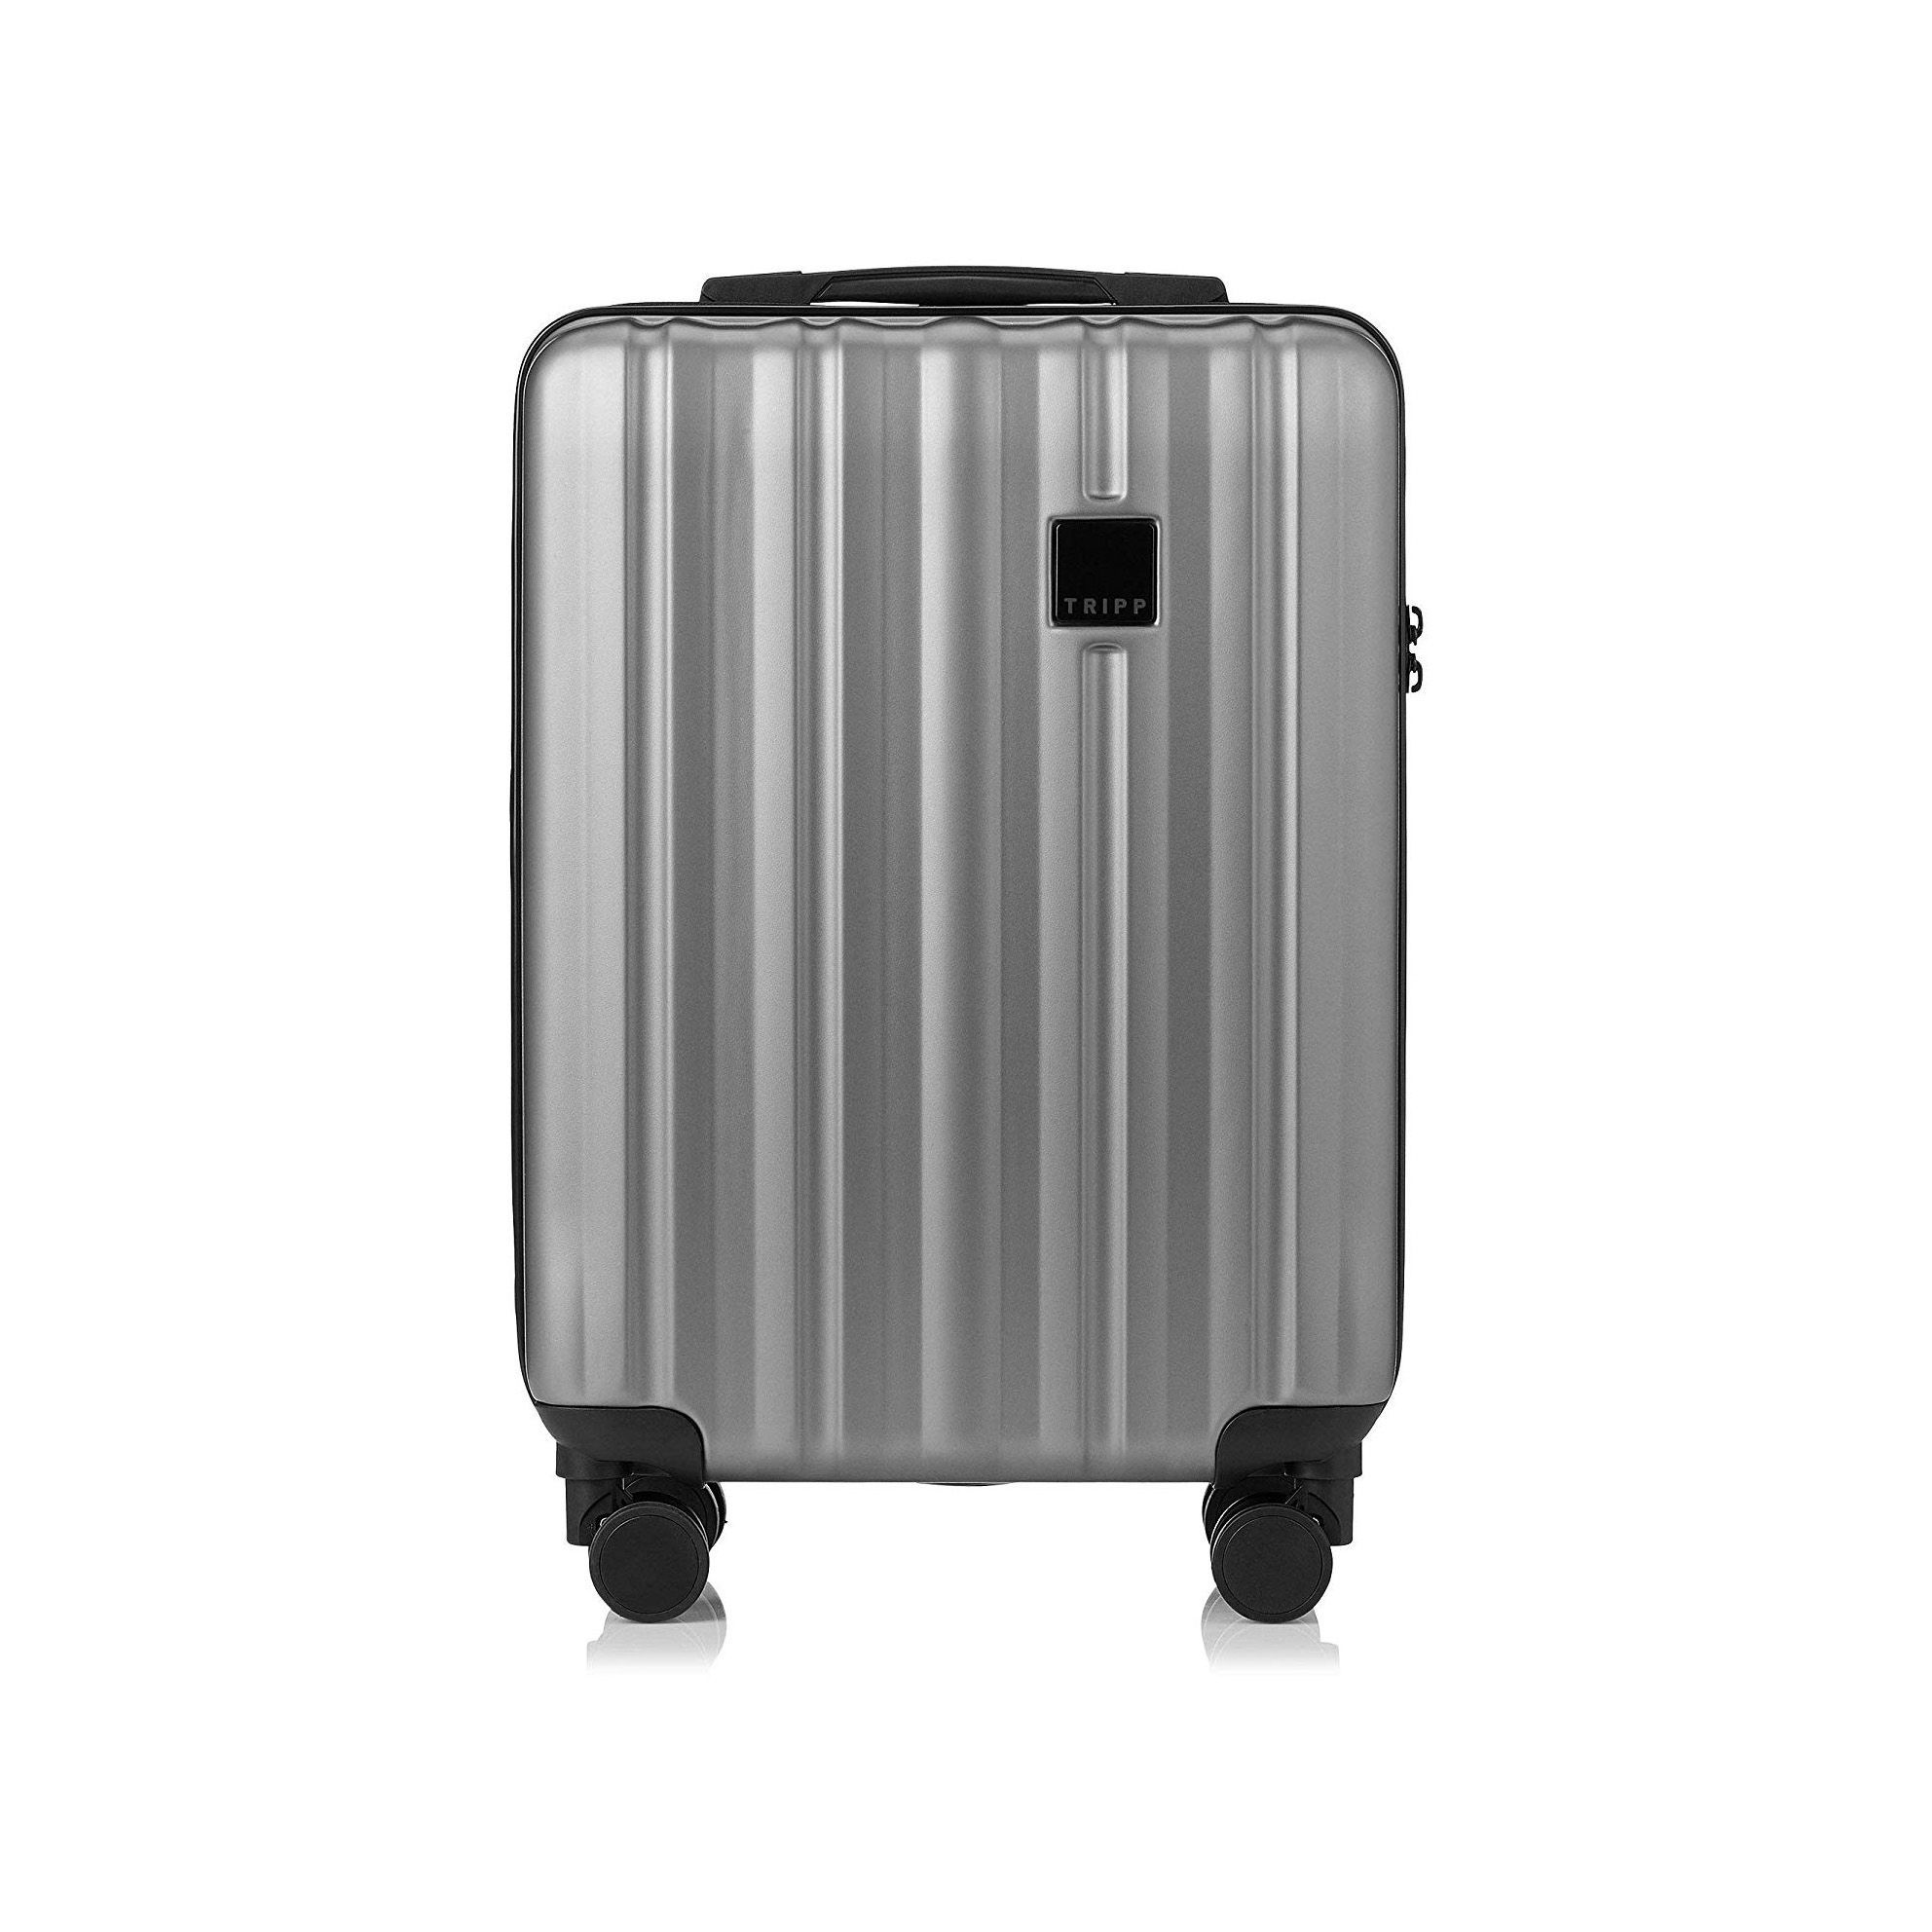 609d3ac66684 4-wheel suitcases - the best wheeled luggage